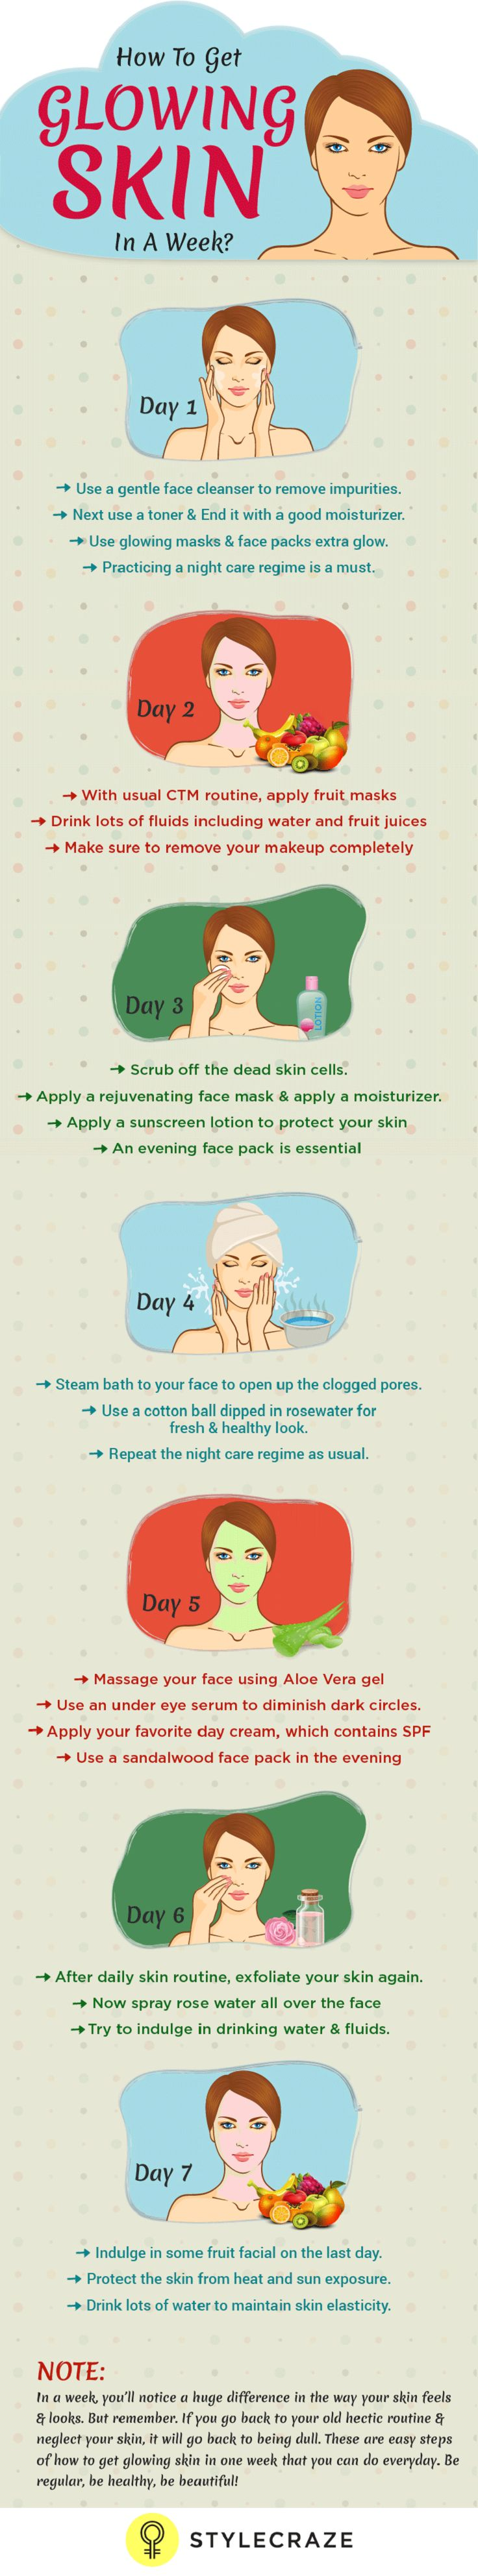 Tips to Get Glowing Skin in a Week - 10 Tips, Tricks and DIYs for Gorgeous Looking Summer Skin